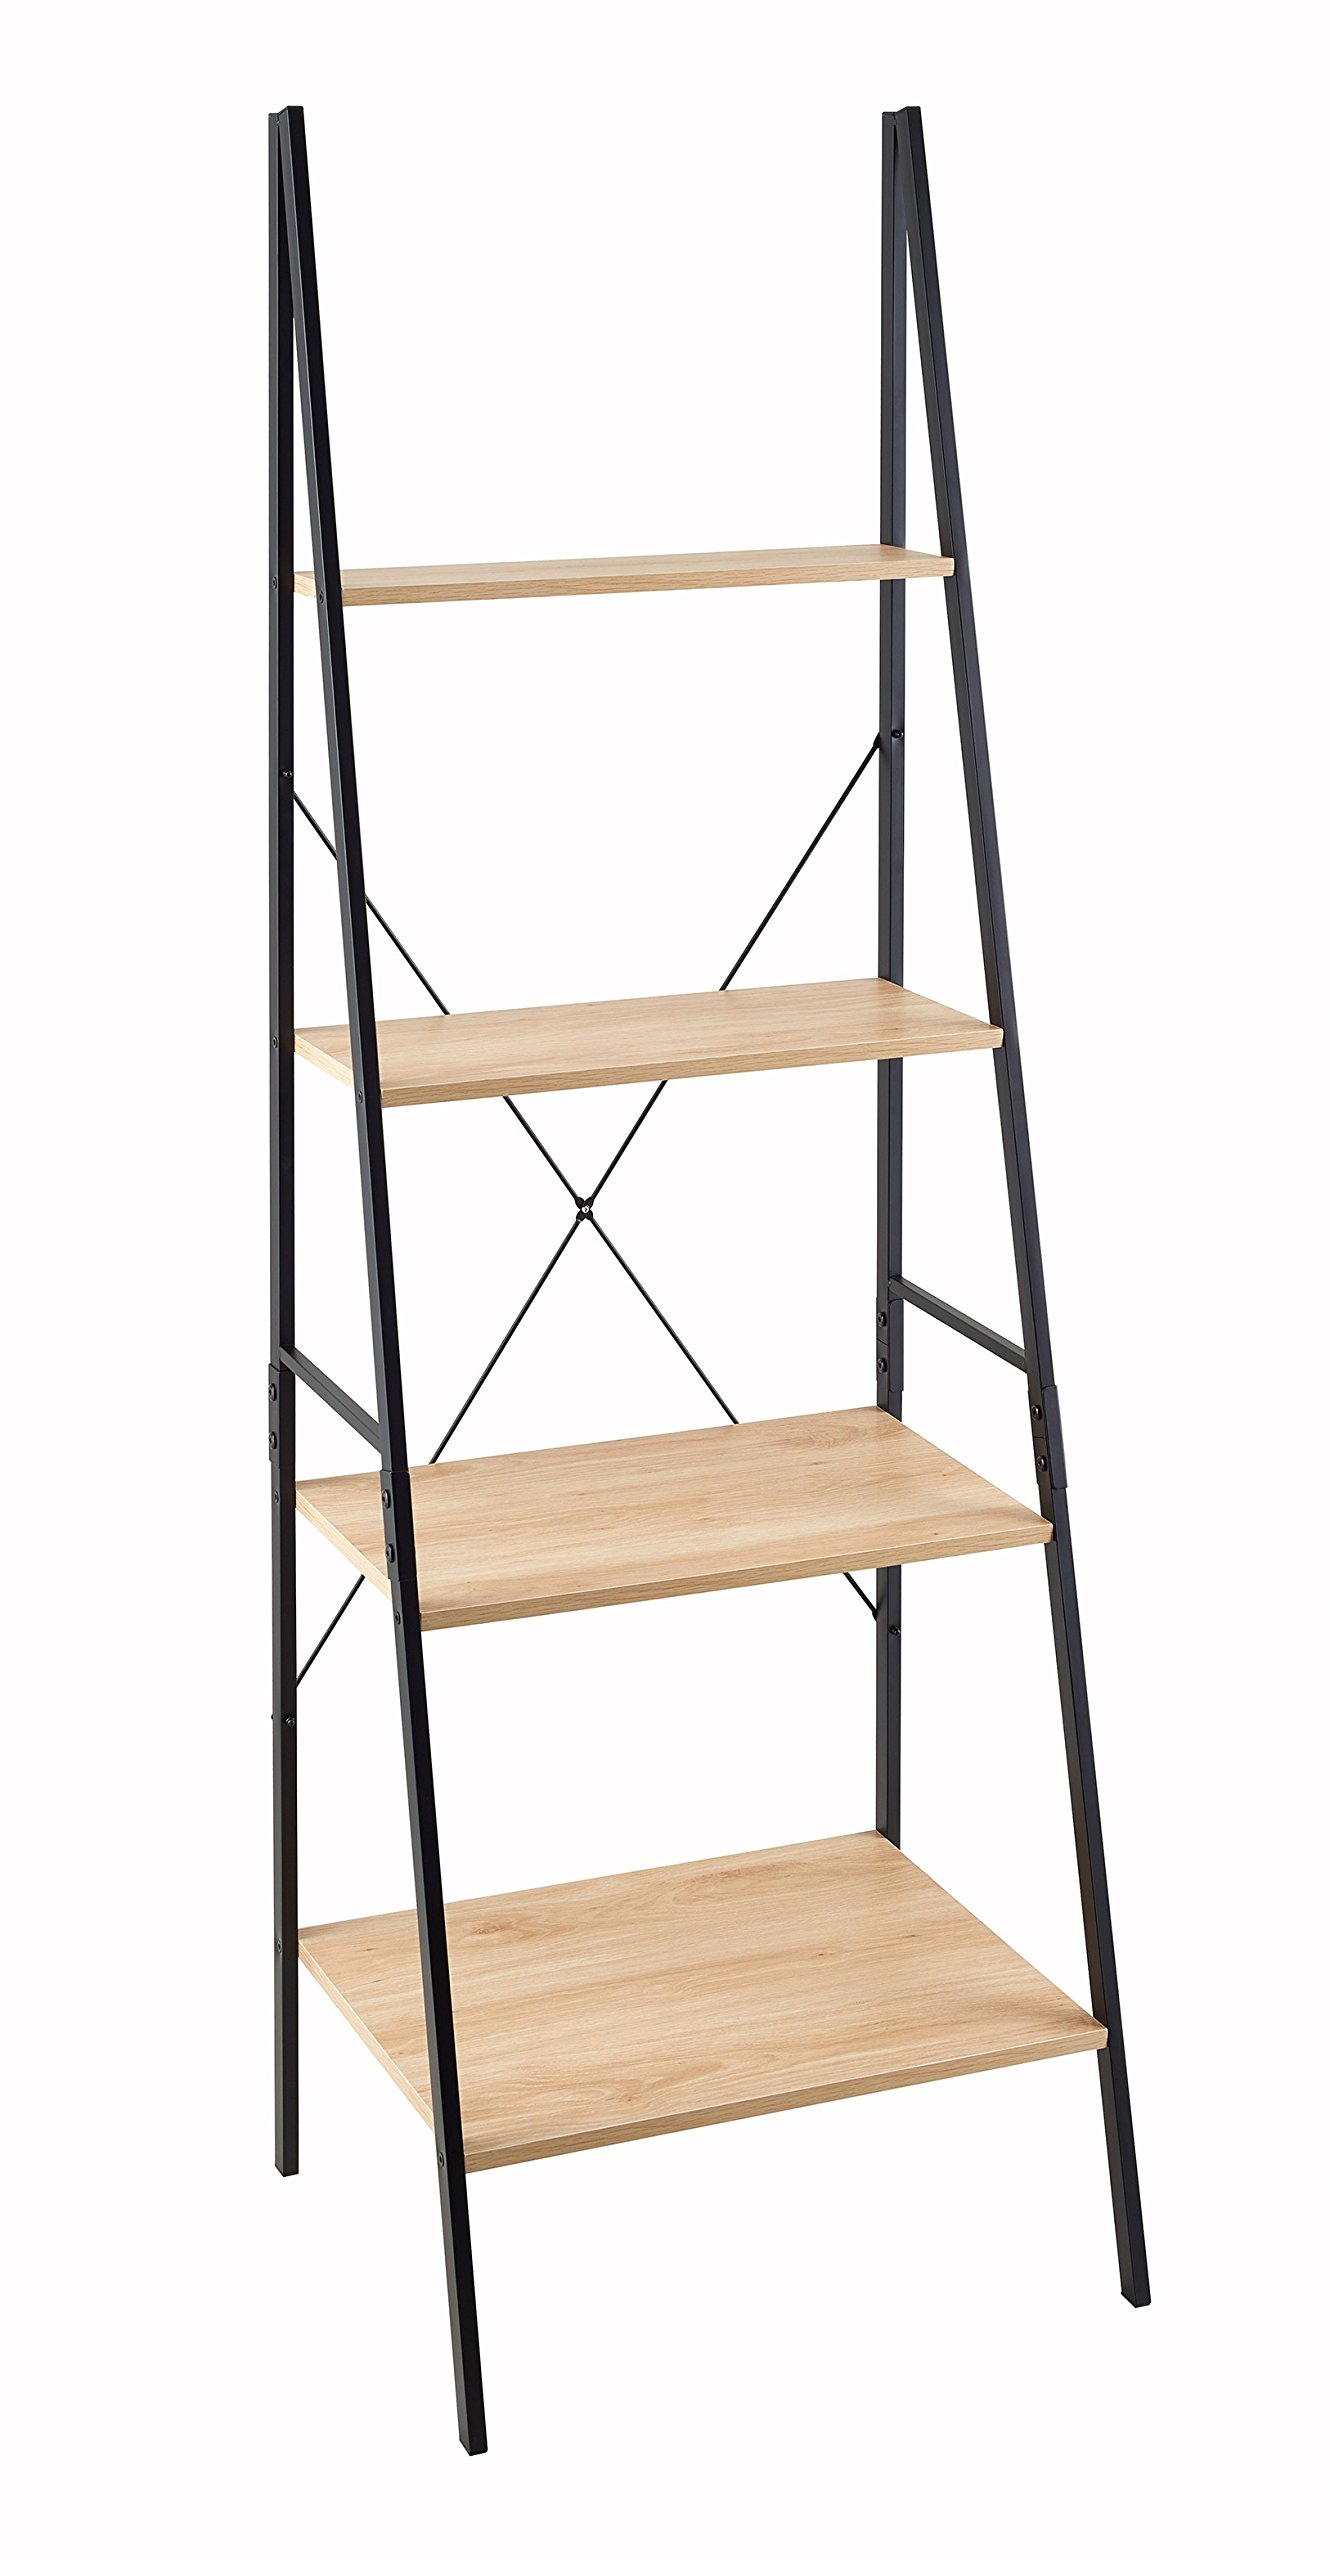 ClosetMaid 1312 4-Tier Wood Ladder Shelf Bookcase, Natural by ClosetMaid